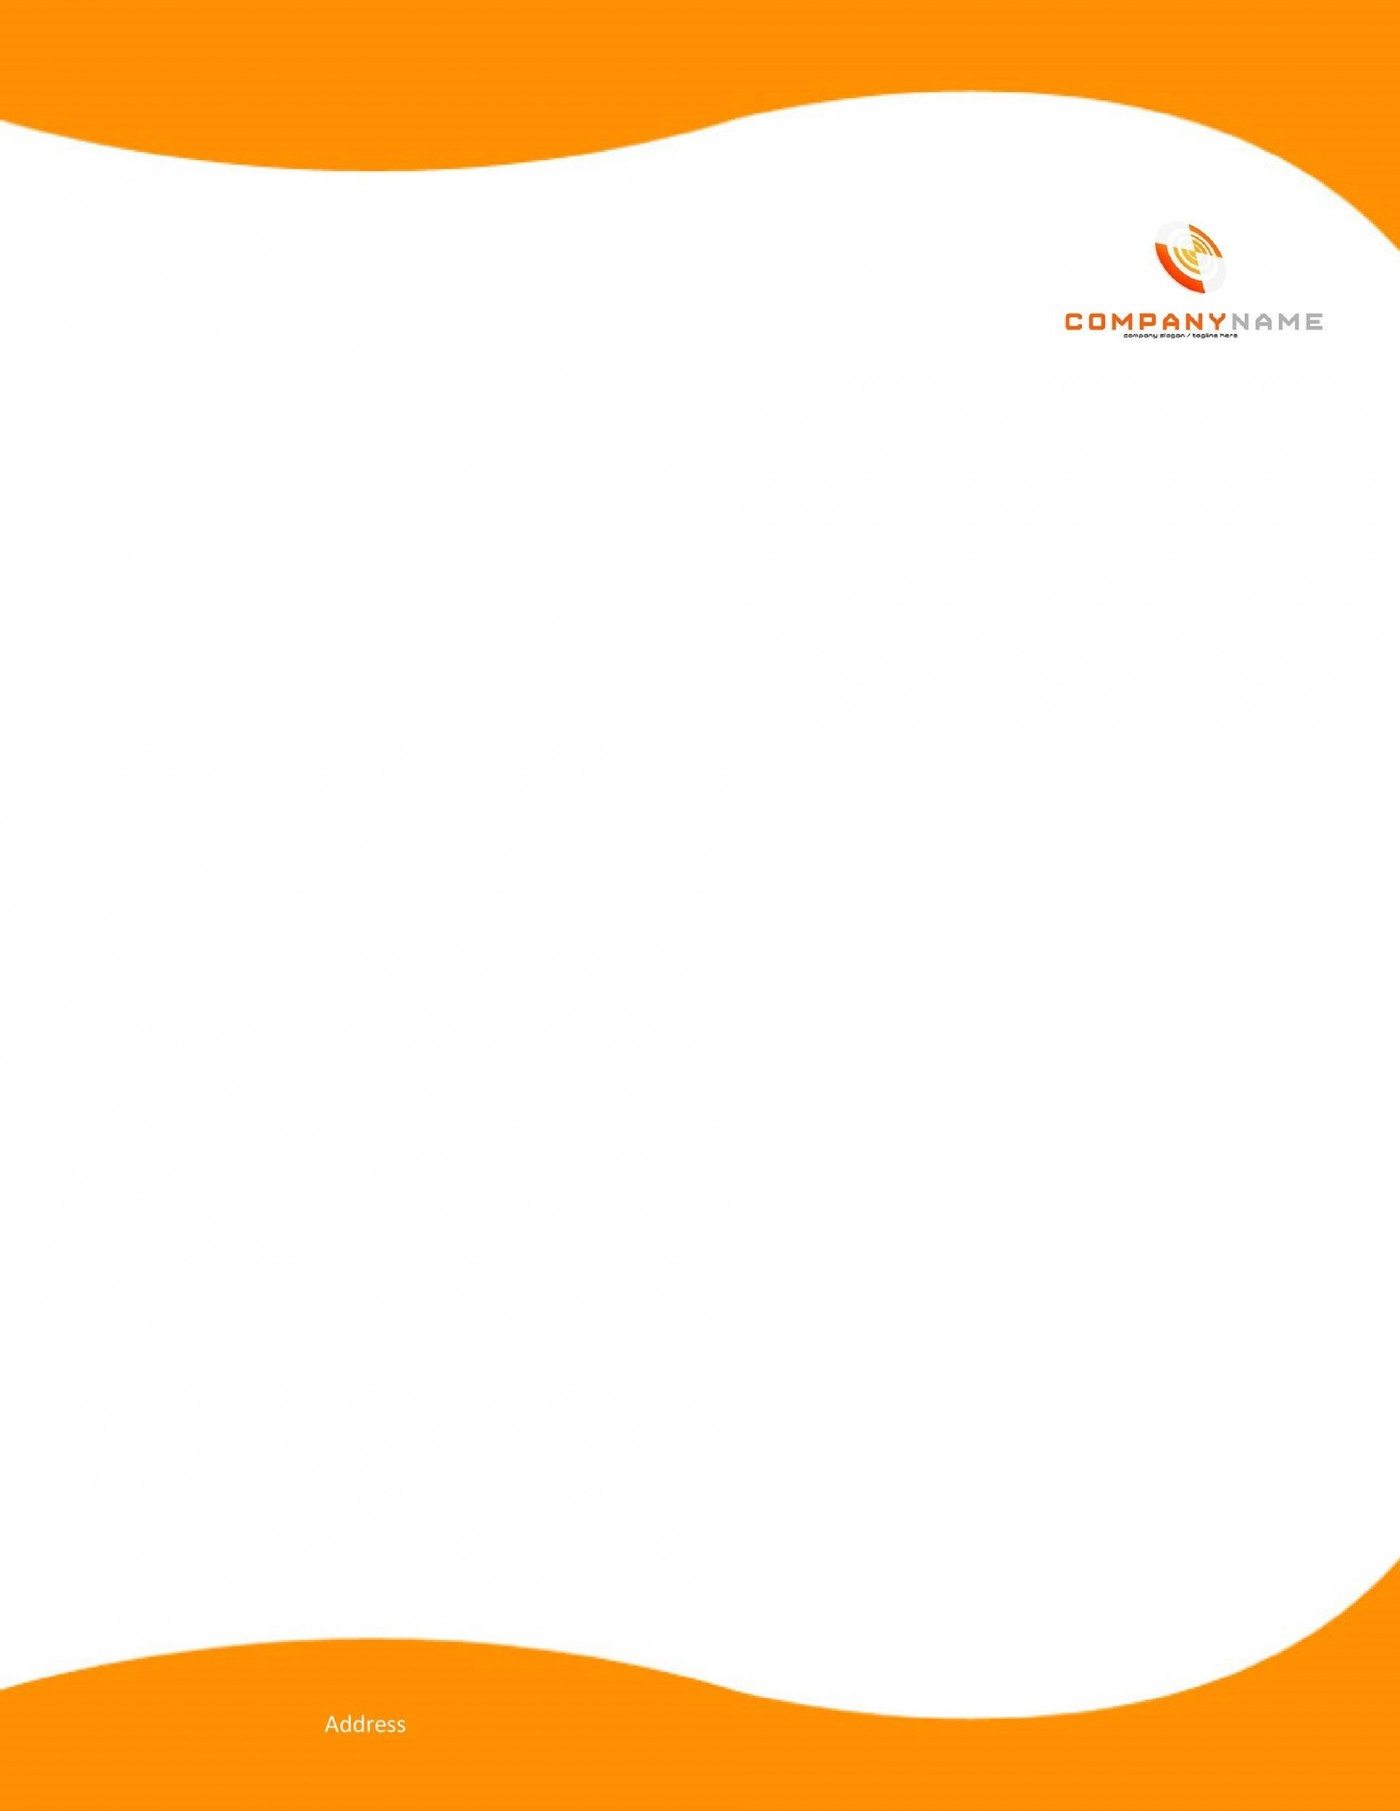 007 Fantastic Letterhead Example Free Download Design  Format In Word For Company Pdf1400